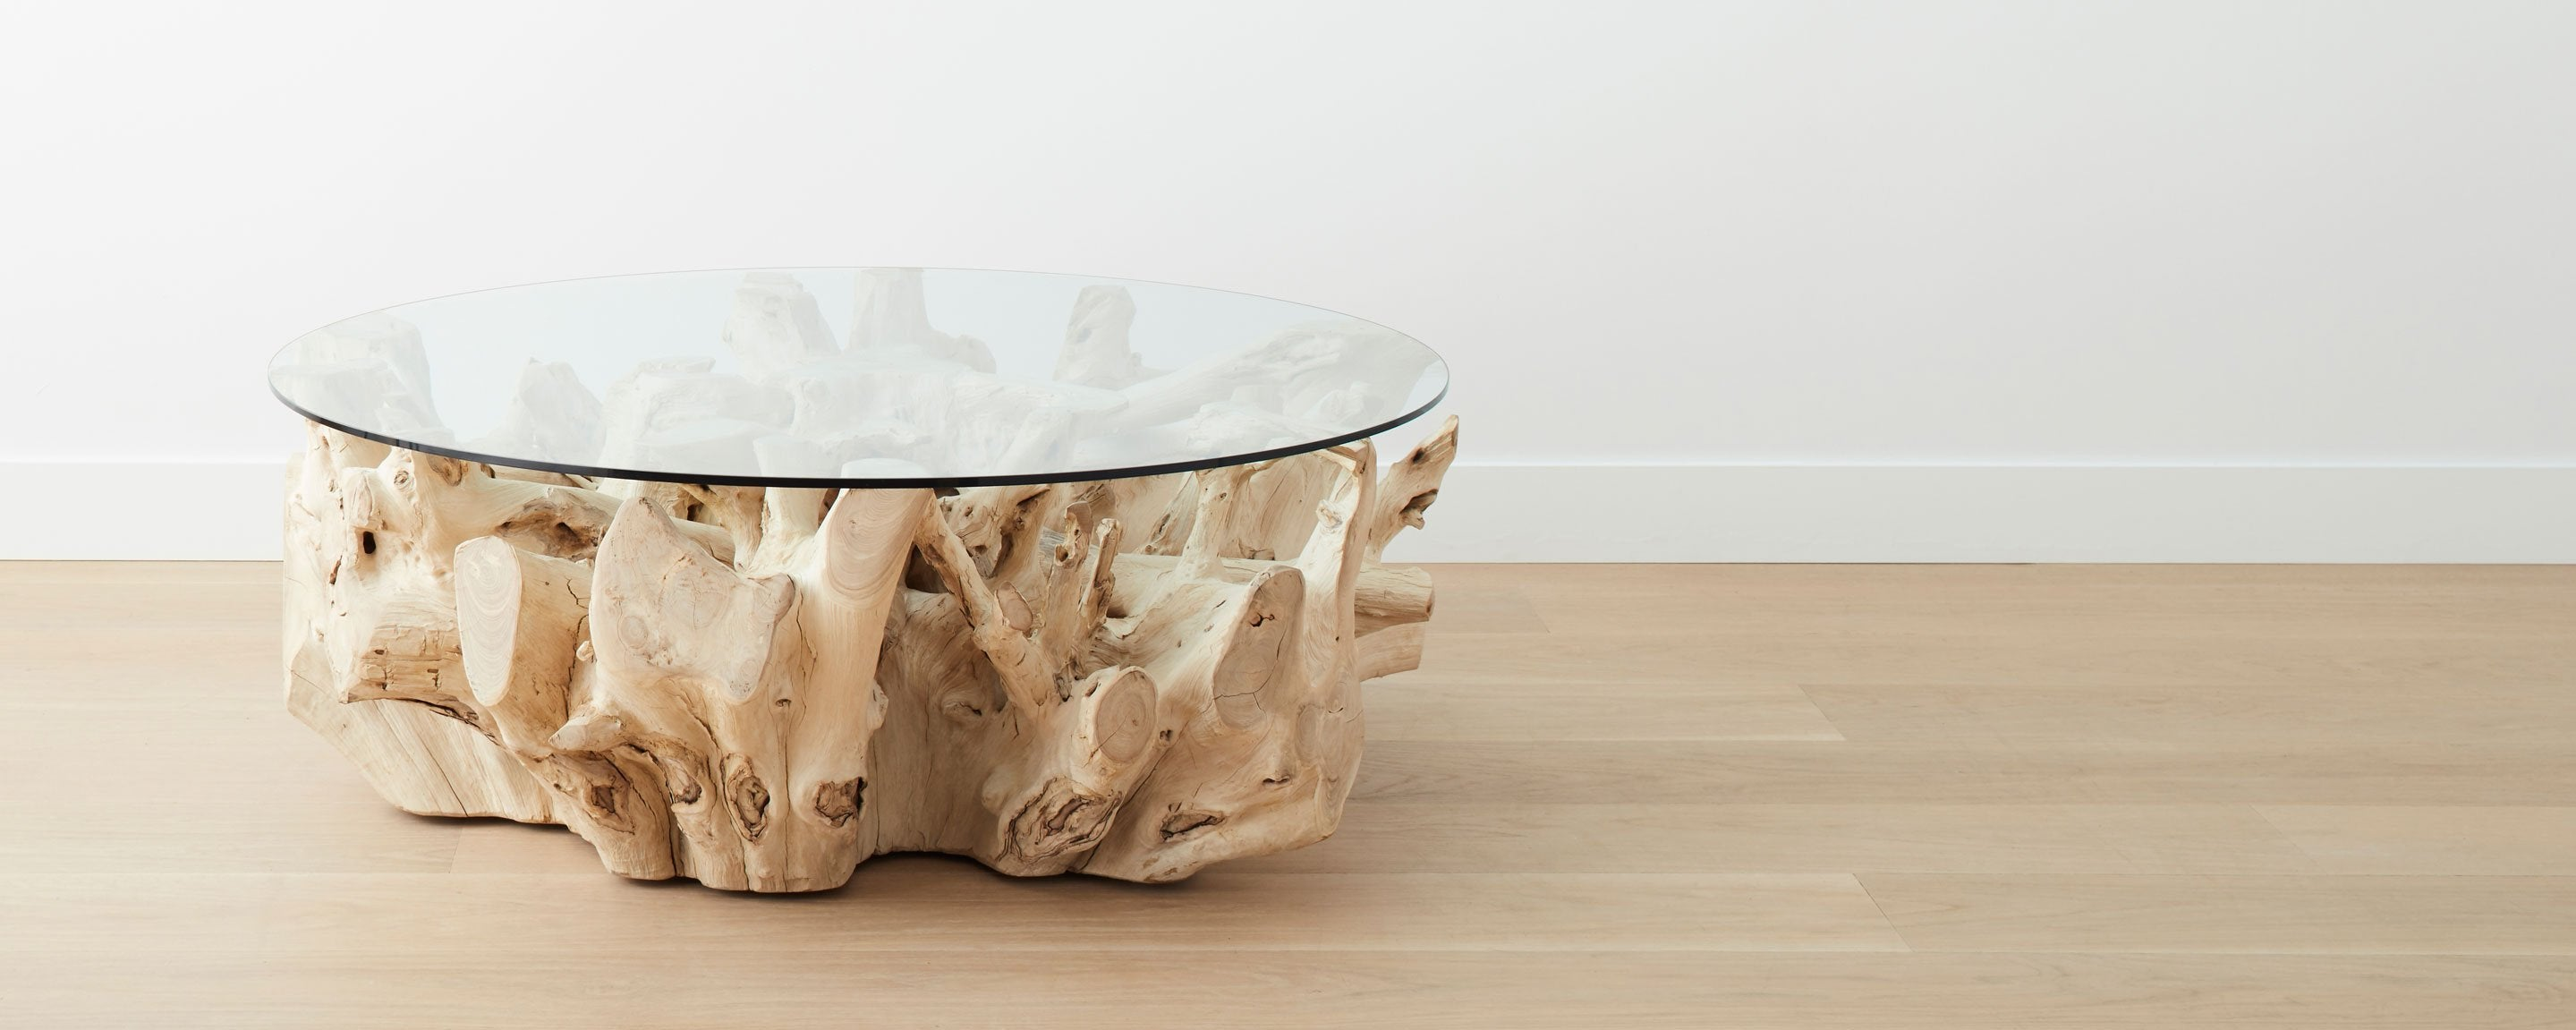 Bleached Teak Root Round Coffee Tables At Homenature Stores